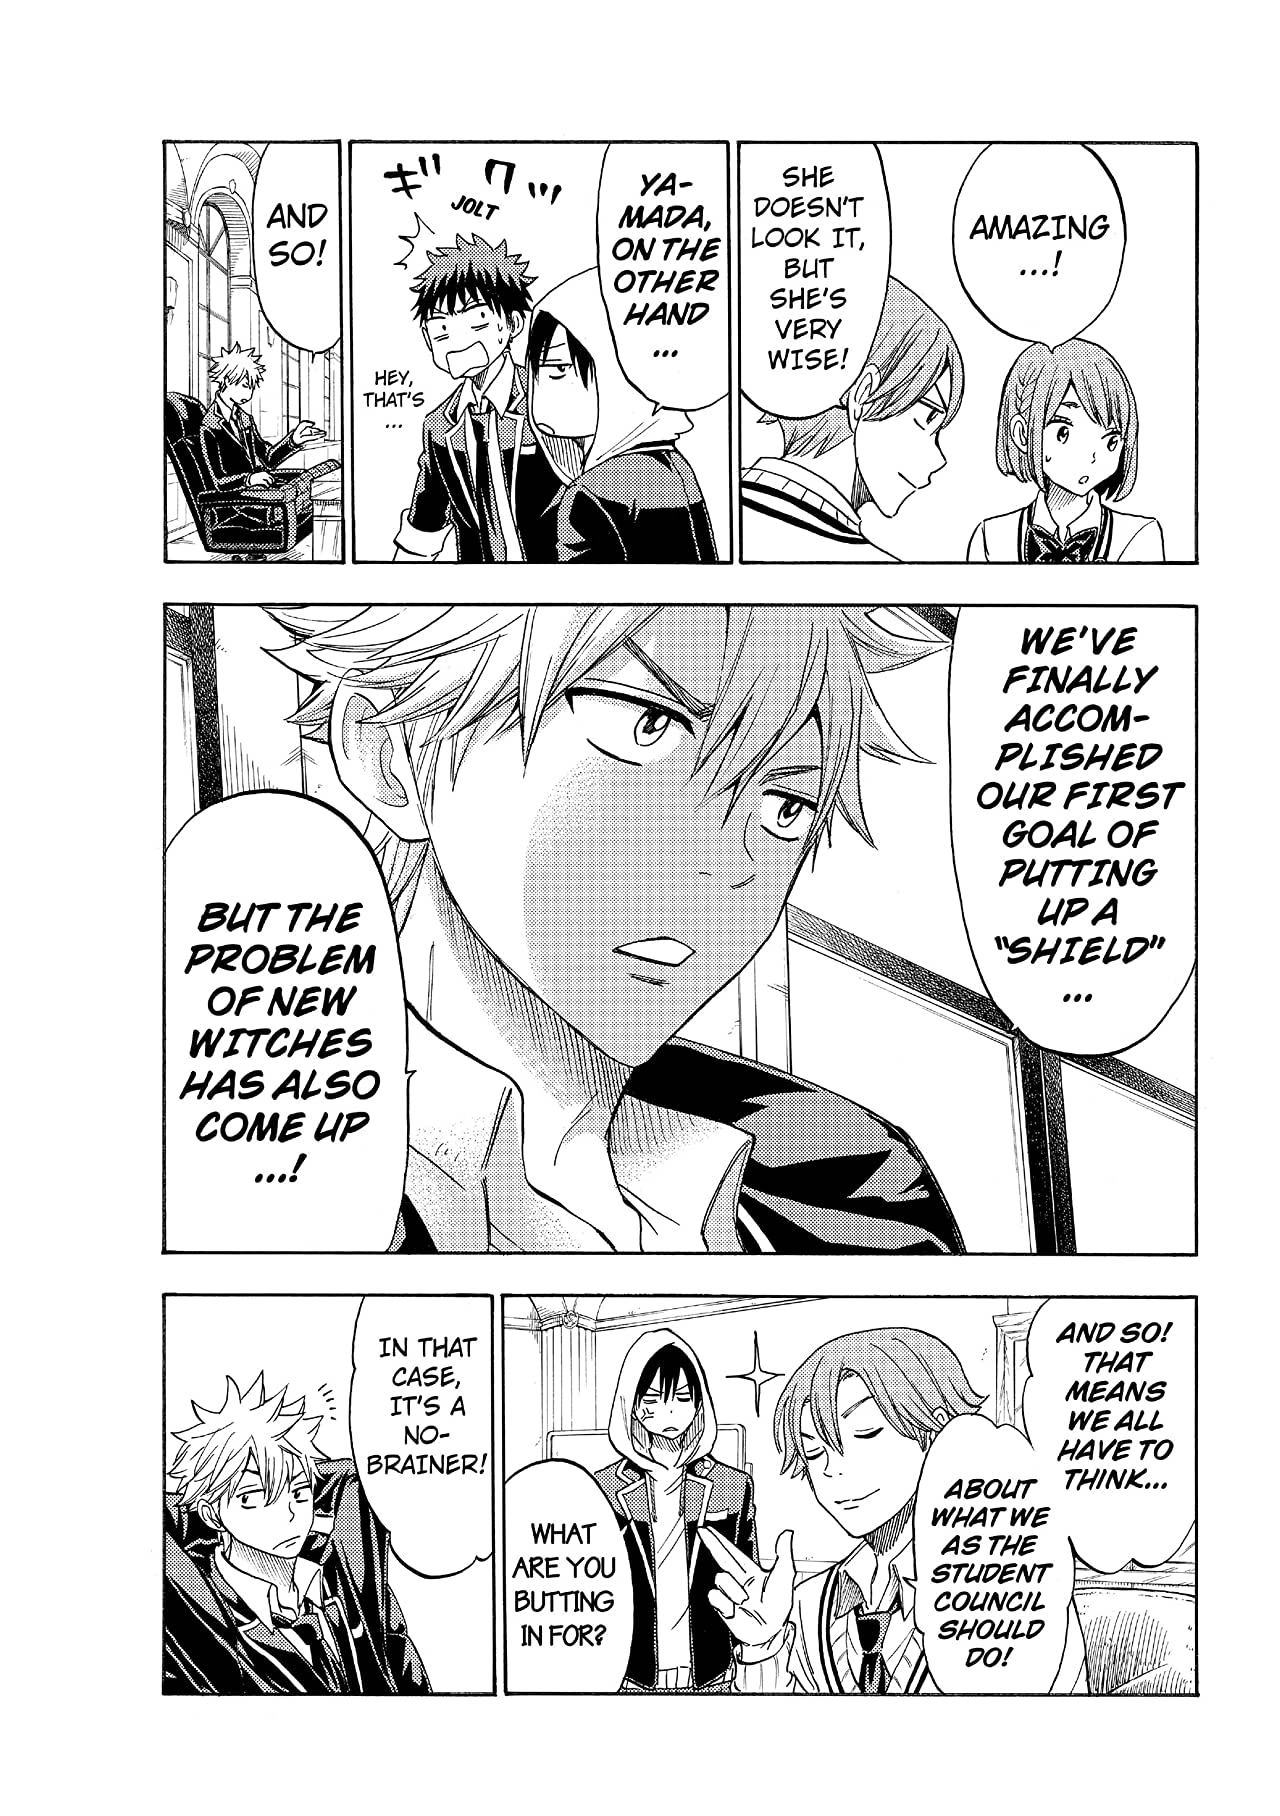 Yamada-kun and the Seven Witches #111